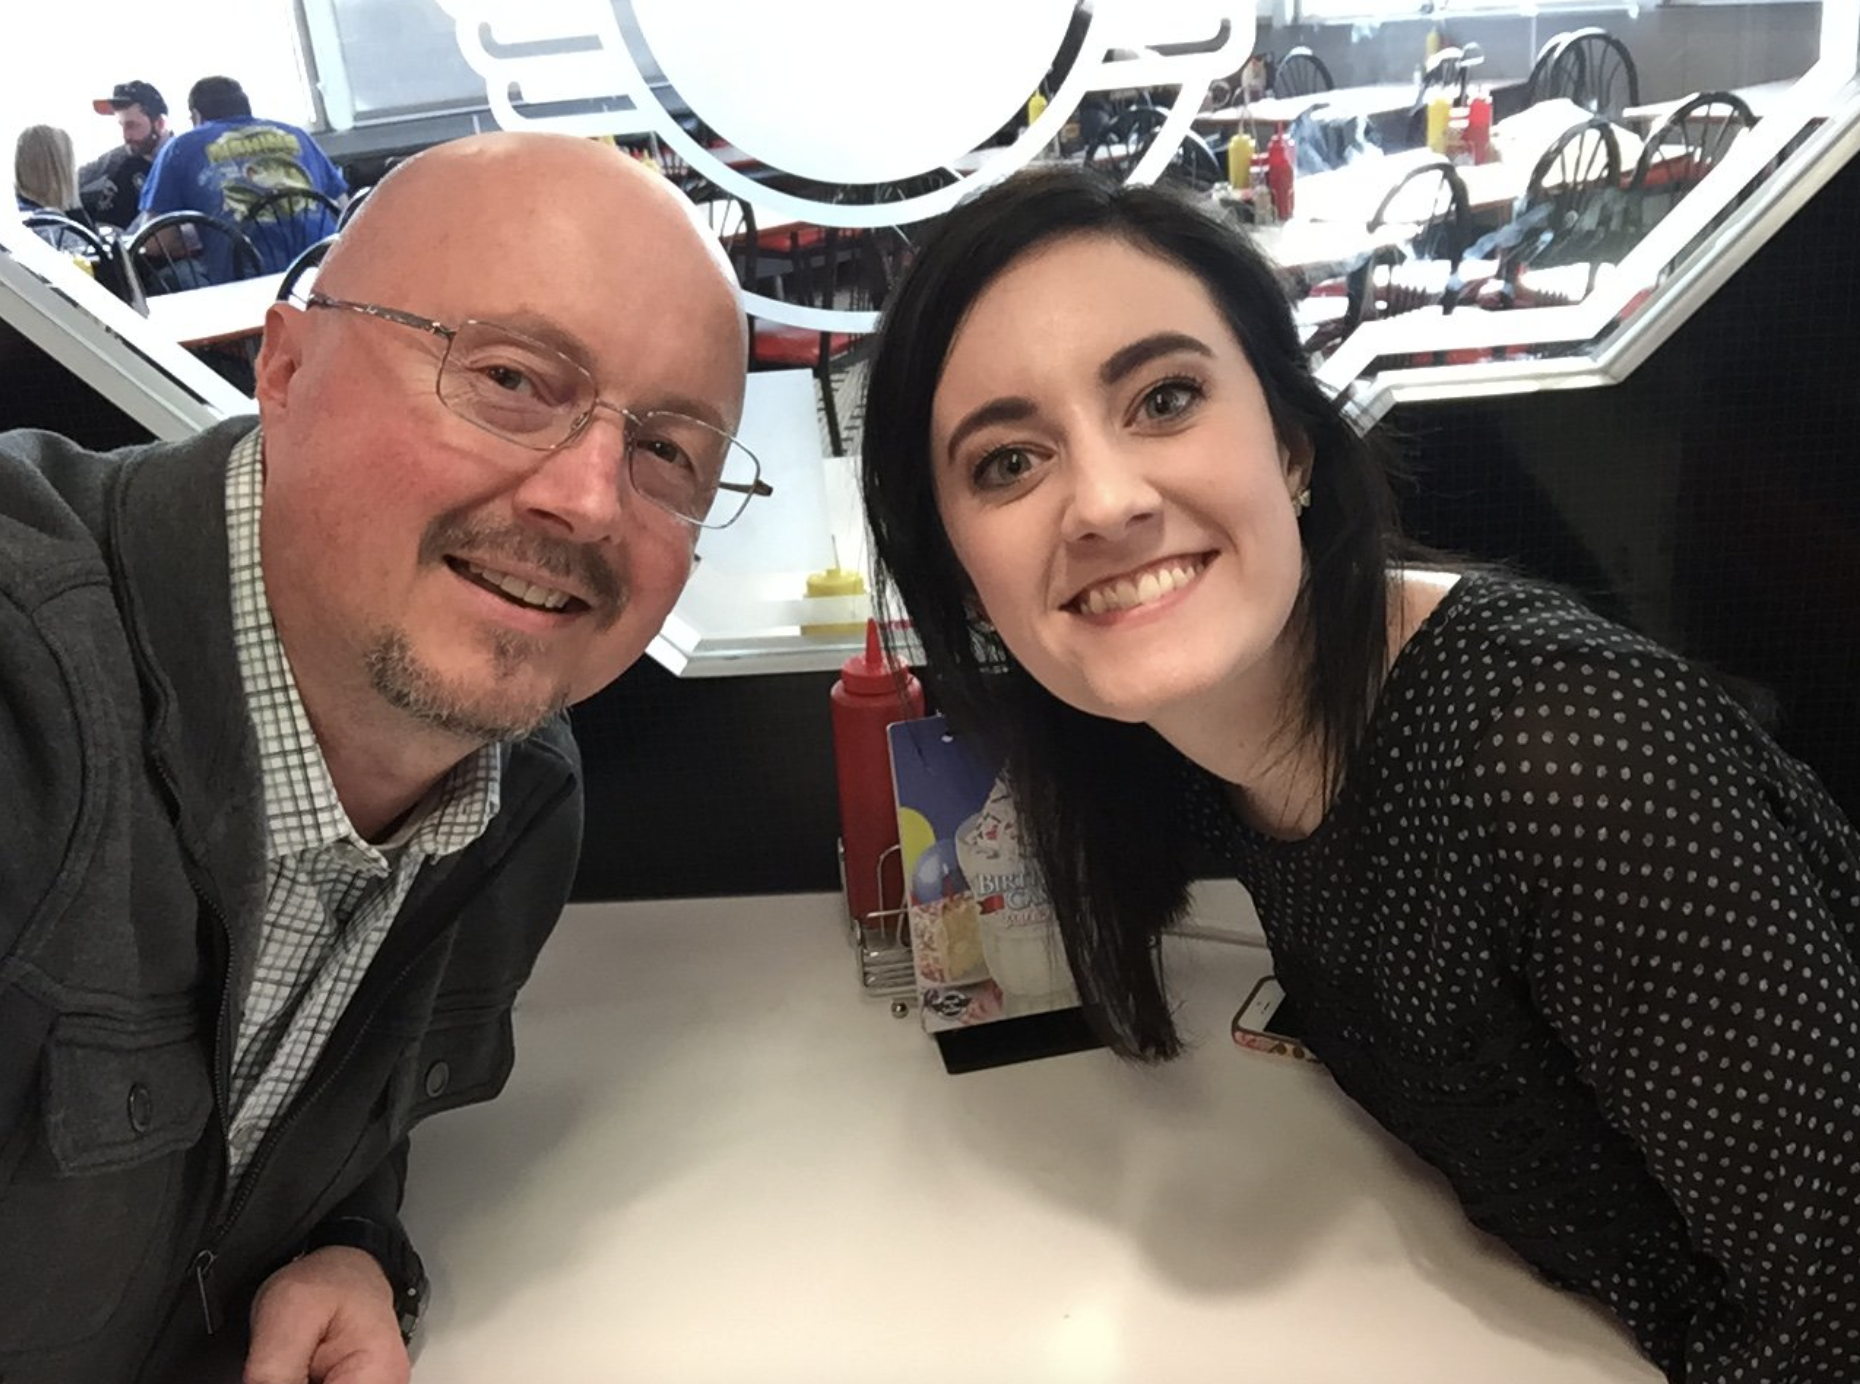 A father is a bald man with glasses, mustache and goatee, dressed in green-checkered white button-down shirt with a gray cotton button-up cardigan. His daughter is sitting across the restaurant table from him. She has medium-length black hair and she's in a black dress with white spots. They are both looking at the camera. The table is empty and they are waiting on their food and drinks.